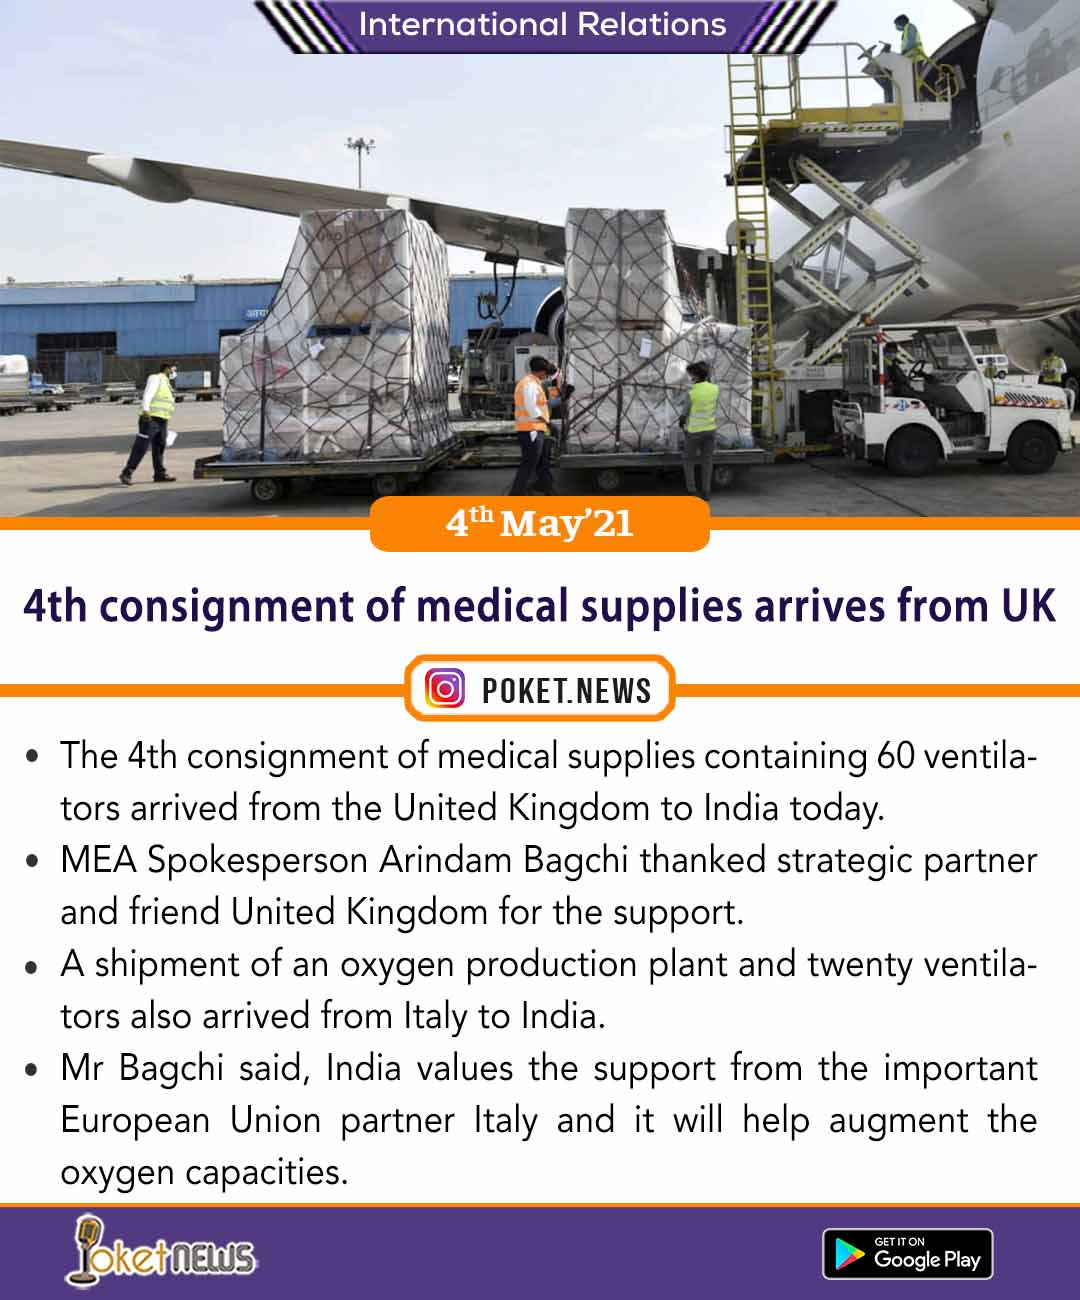 4th consignment of medical supplies arrives from UK